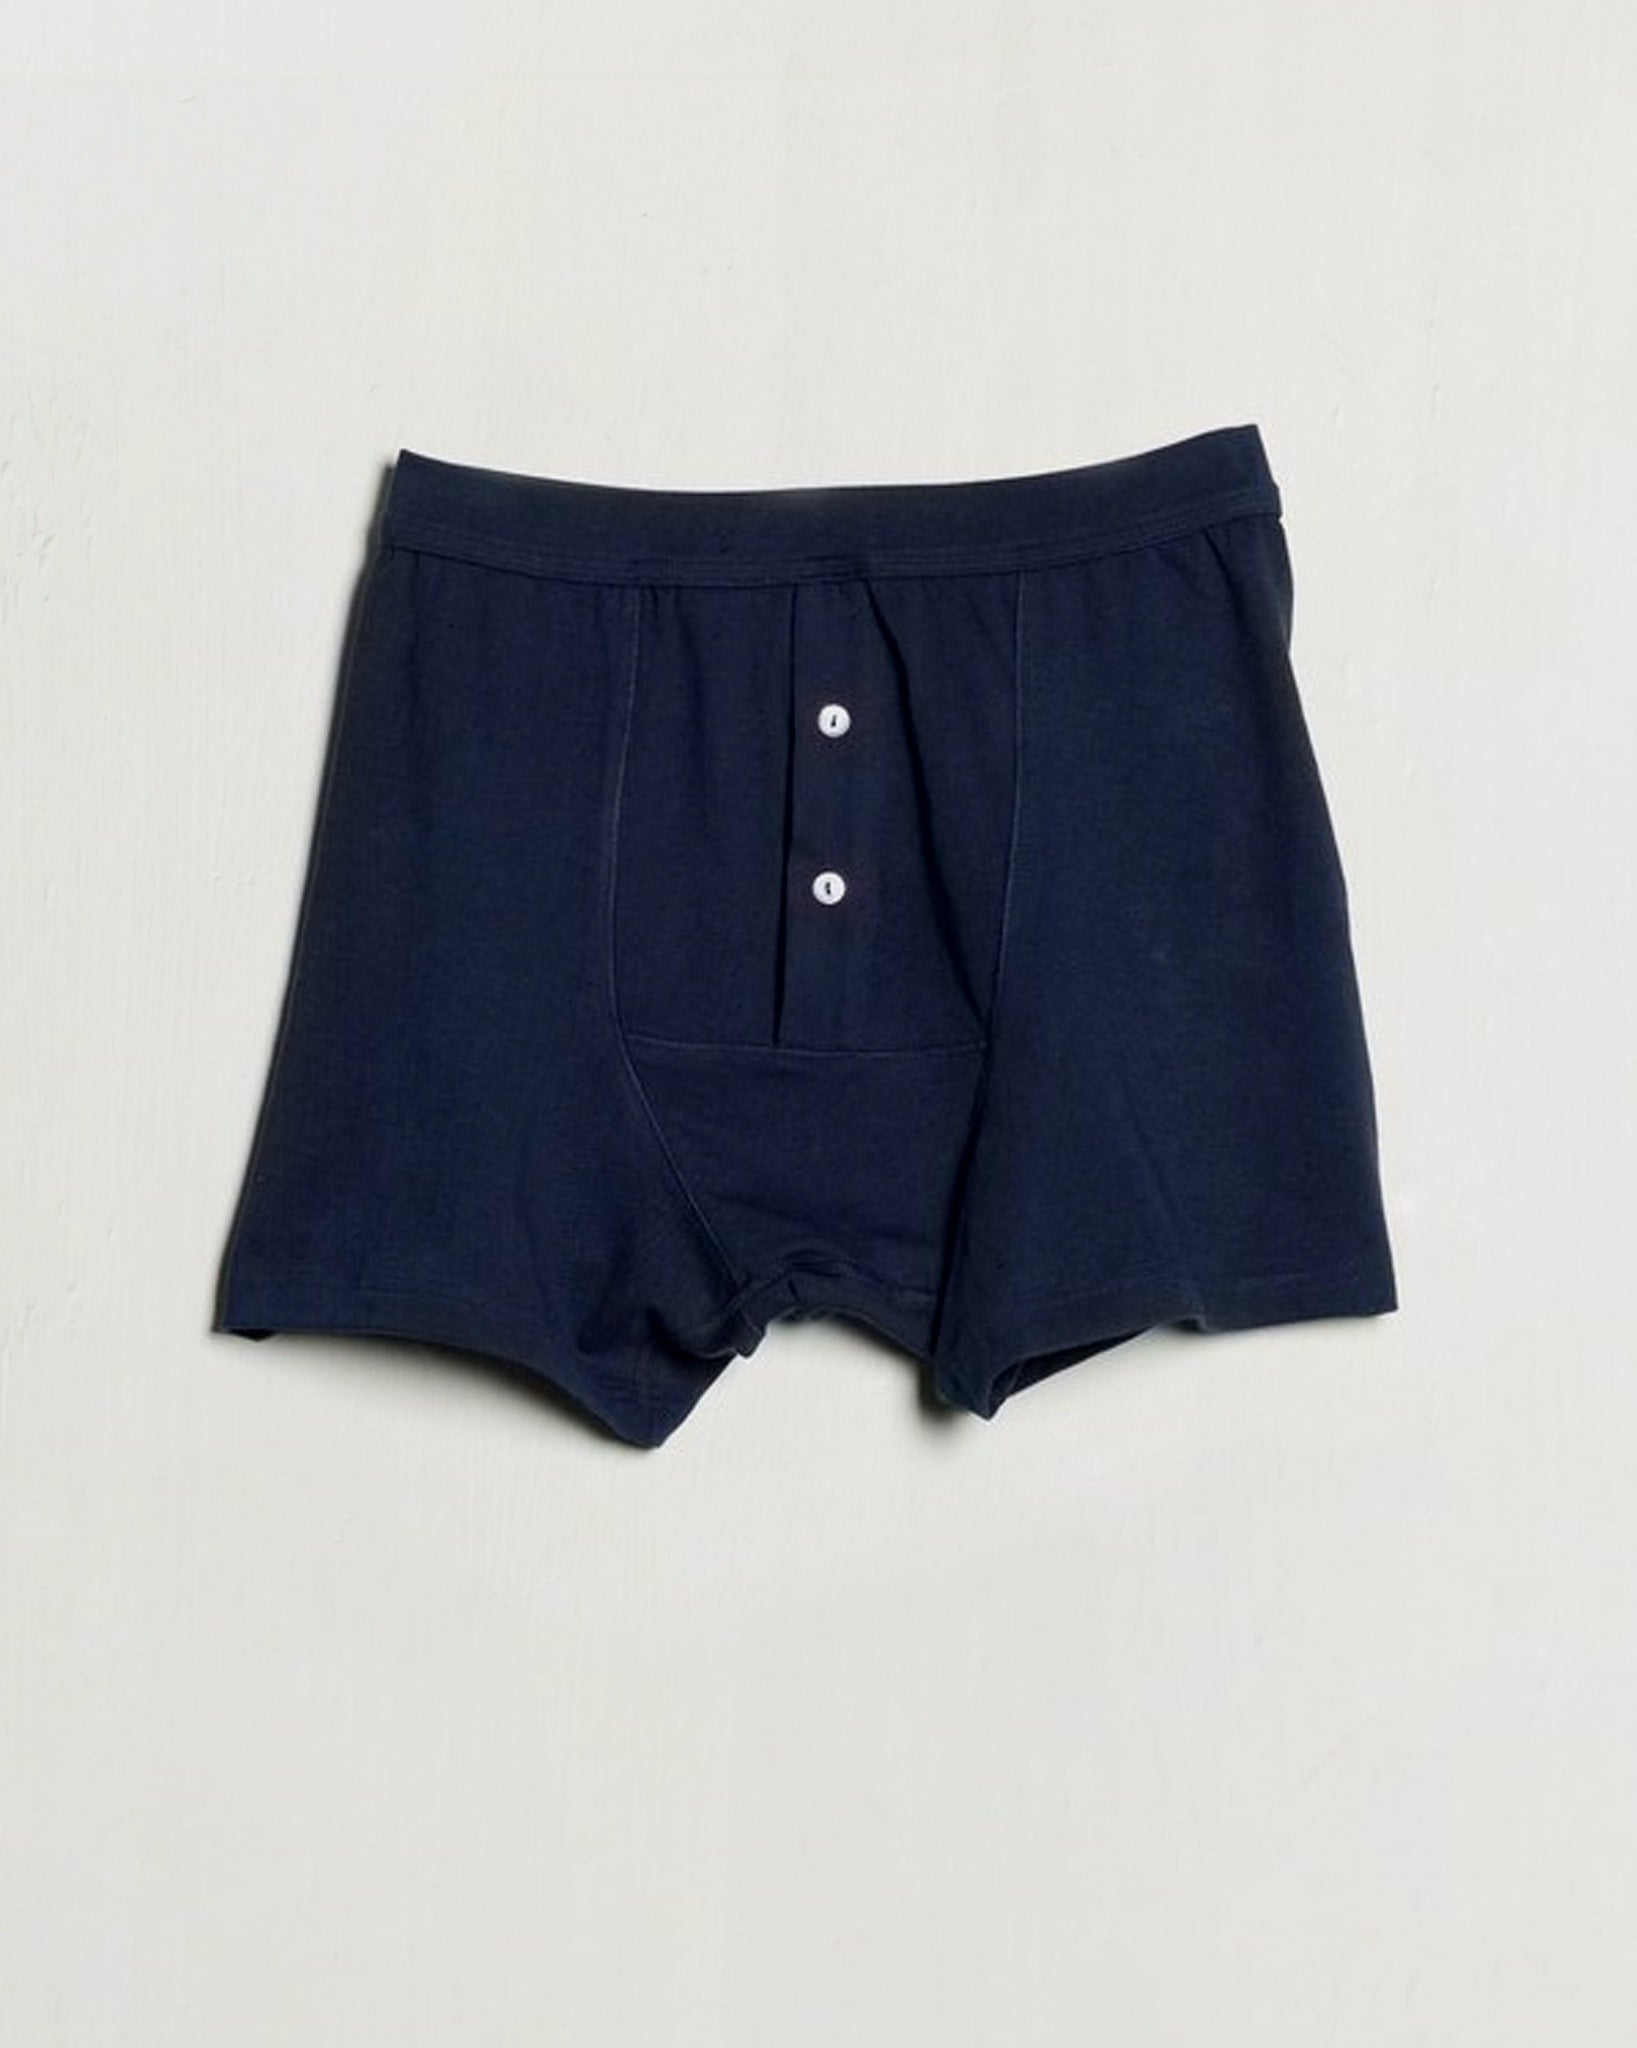 Merz b. Schwanen Underpants, Ink Blue